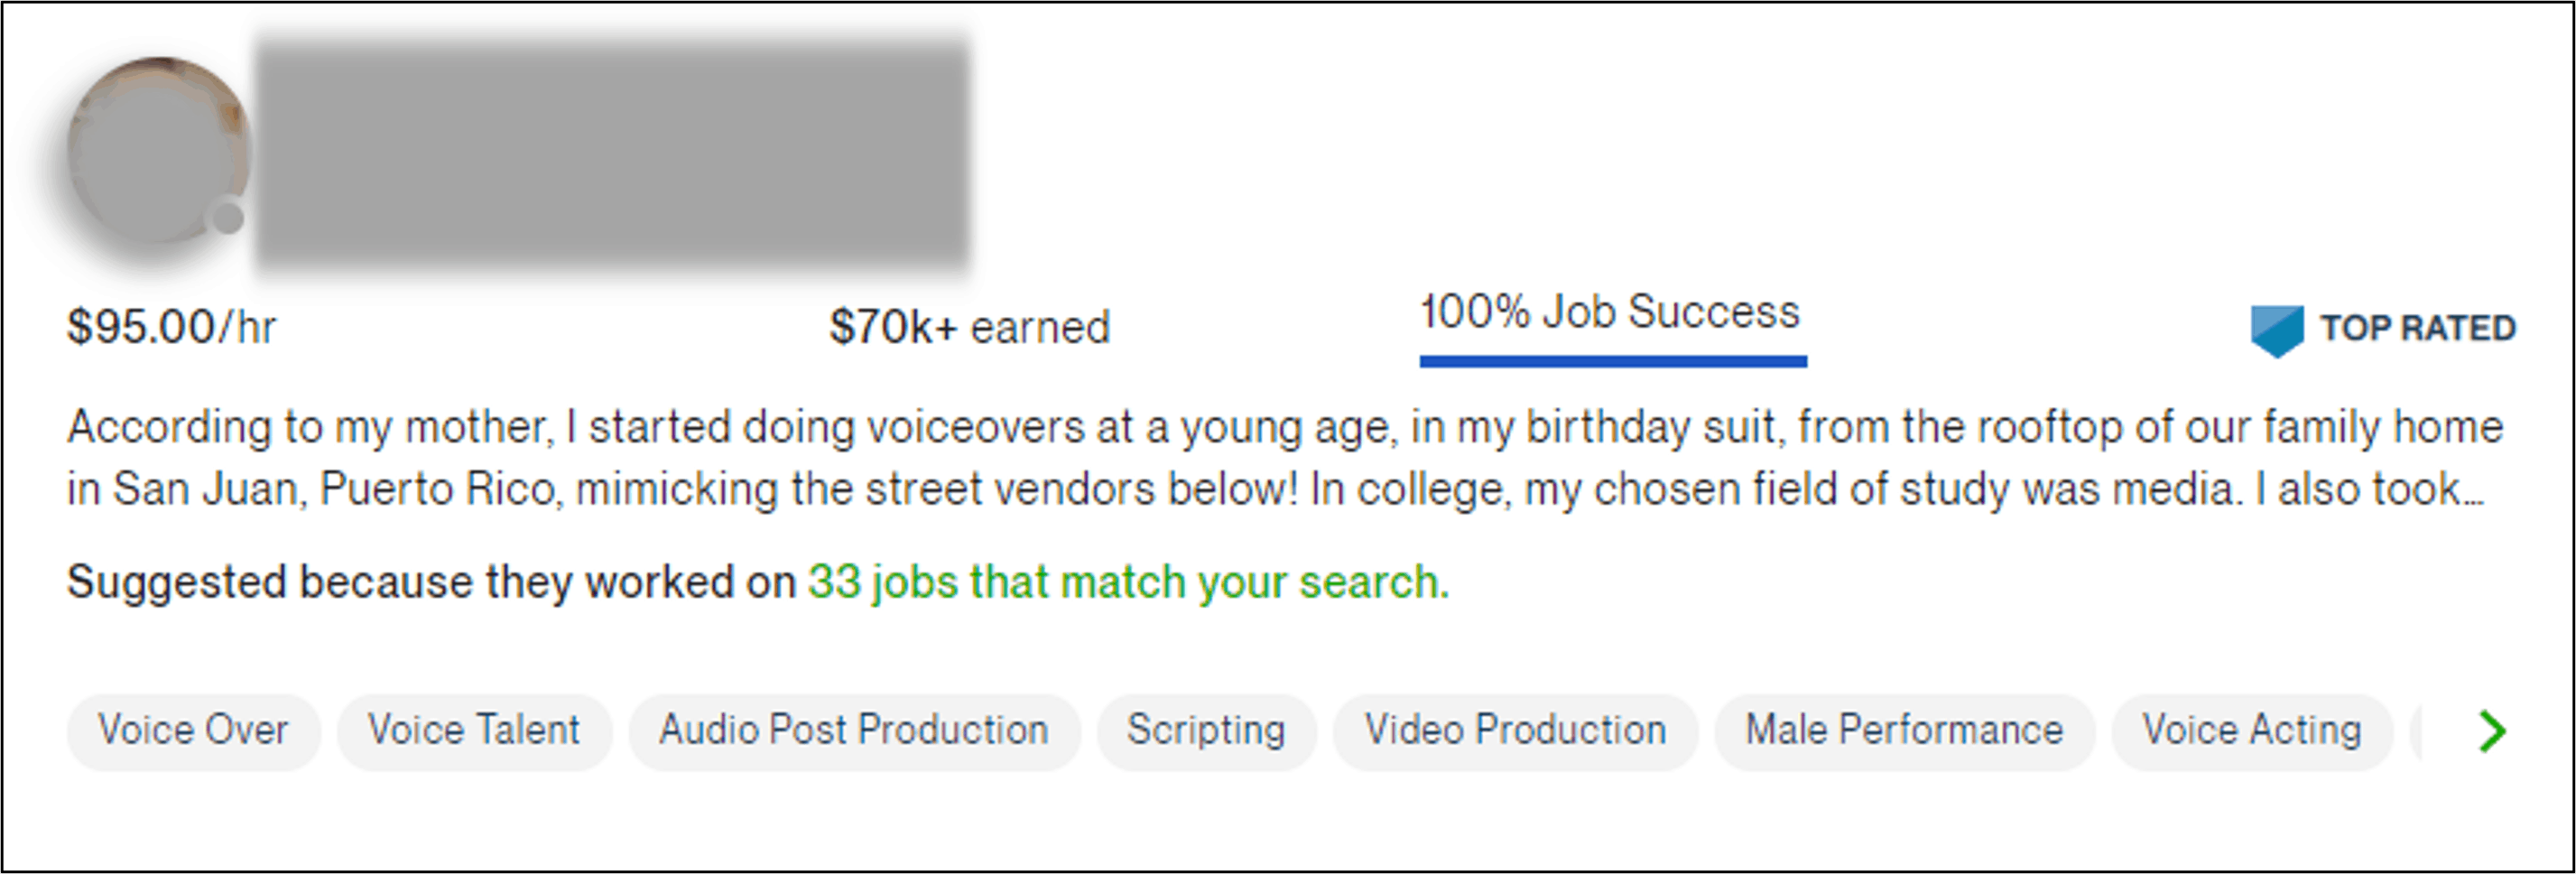 Upwork Top Rated badge on a user profile